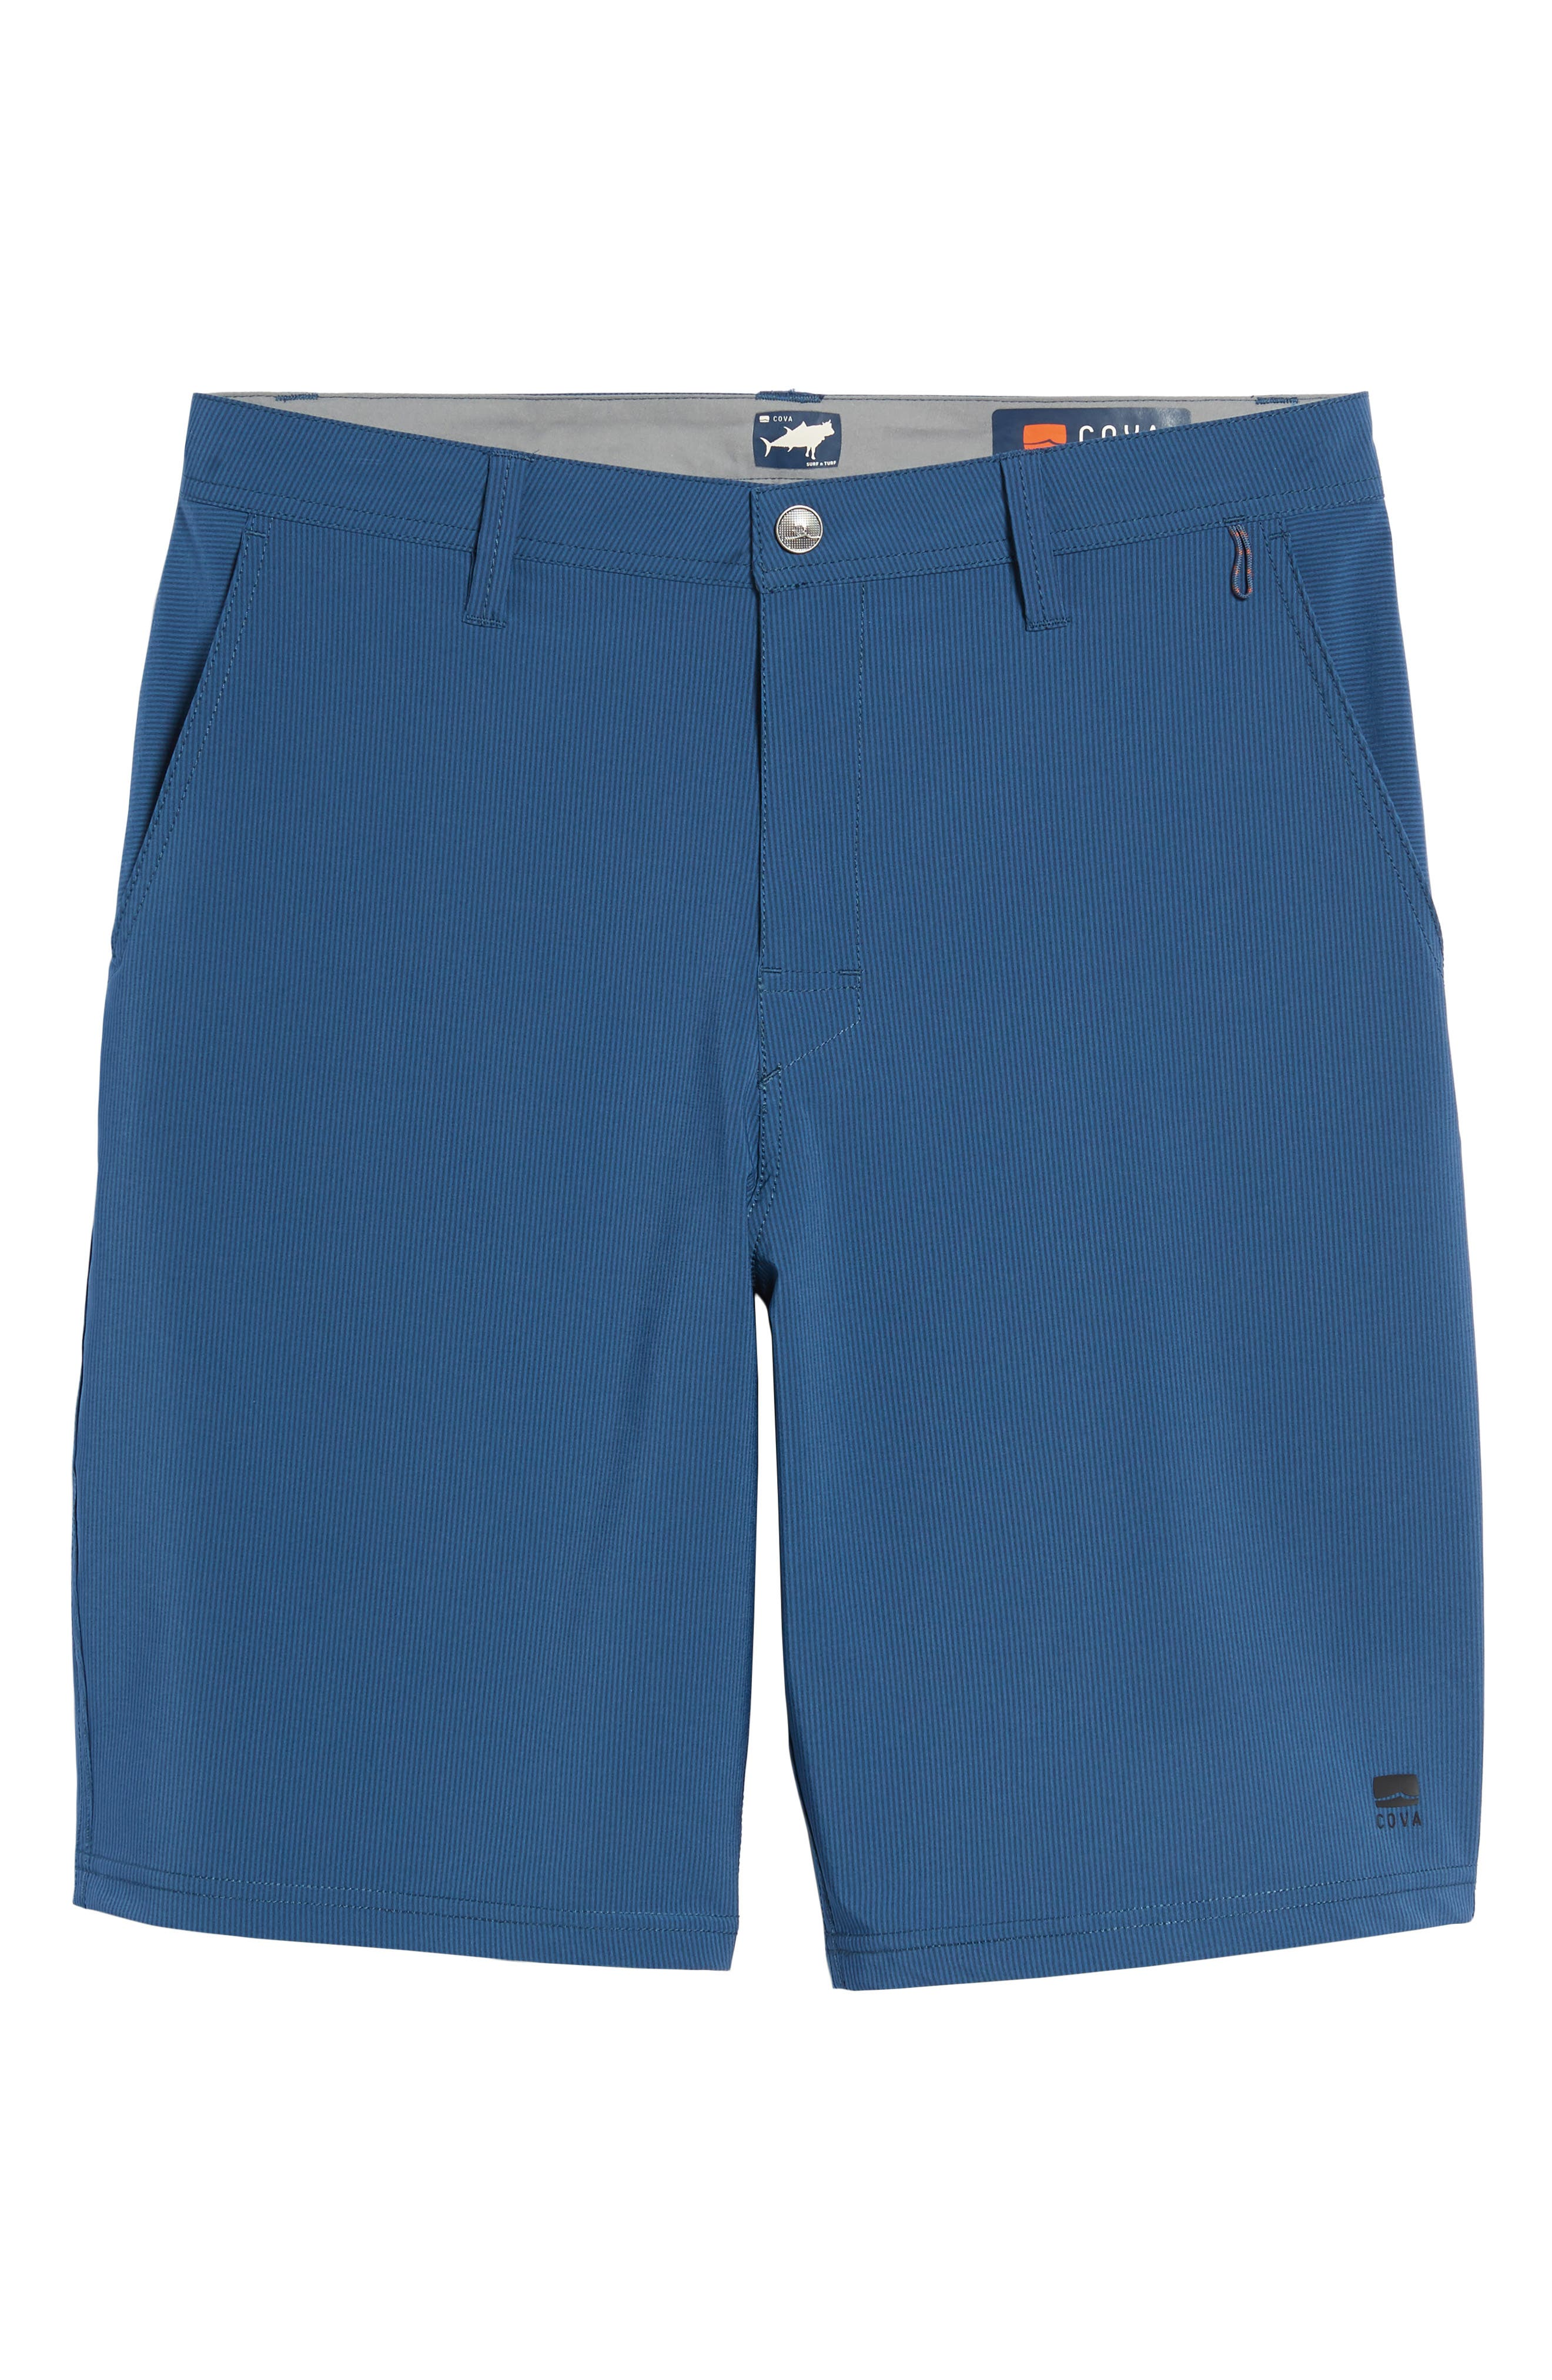 Spotted Hybrid Shorts,                             Alternate thumbnail 6, color,                             412